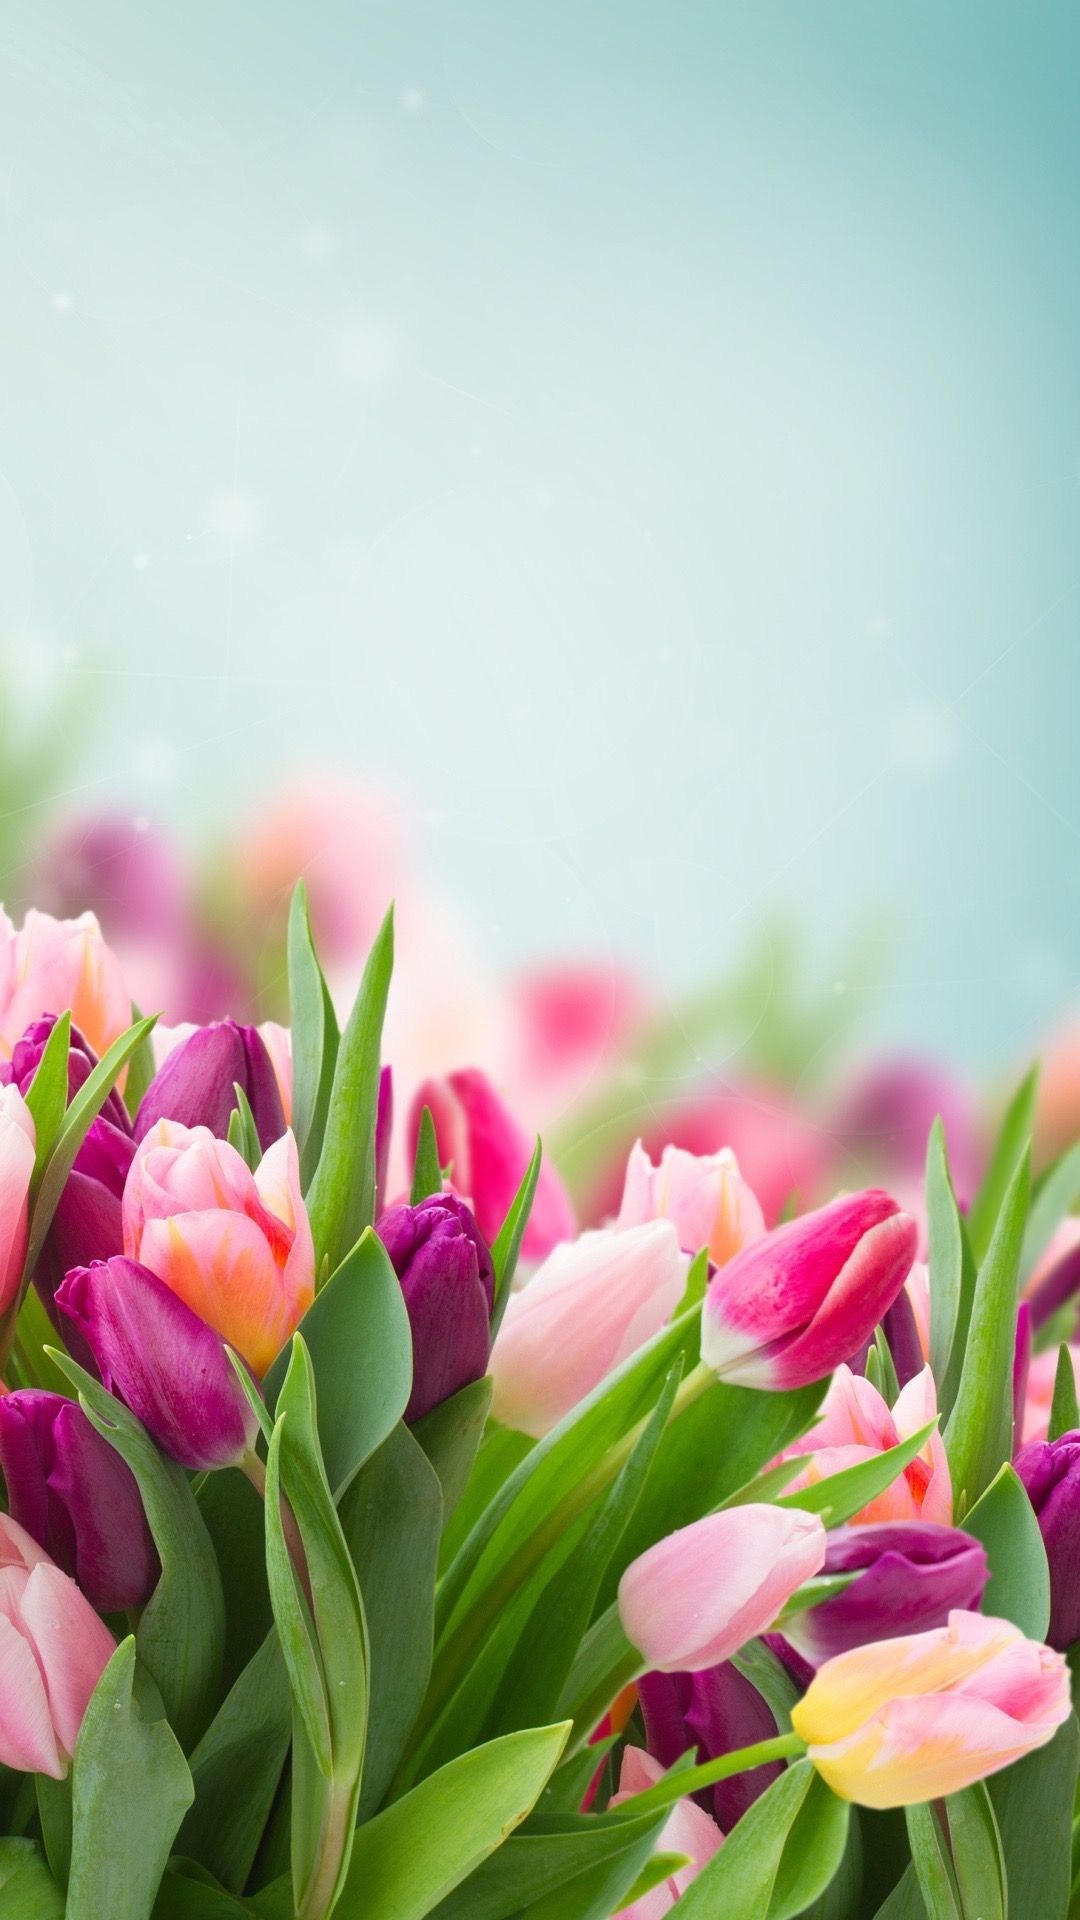 Tulips So Pretty Backgrounds Pinterest Flowers Tulips And